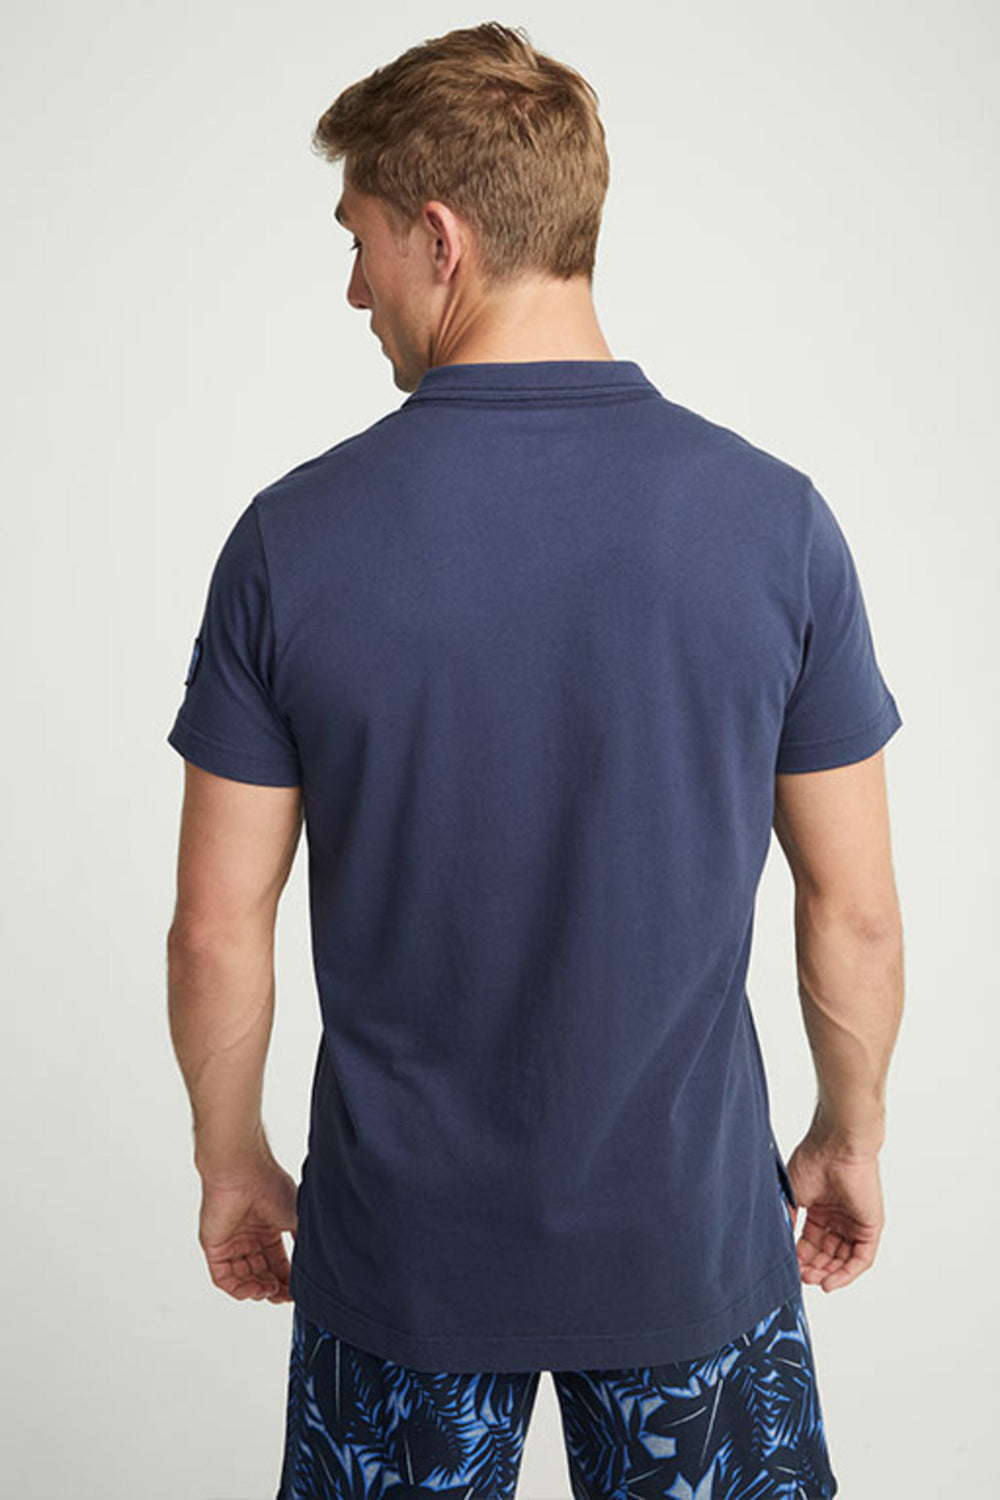 Jockey® Cotton Half Sleeves Dark Iris Henley Shirt